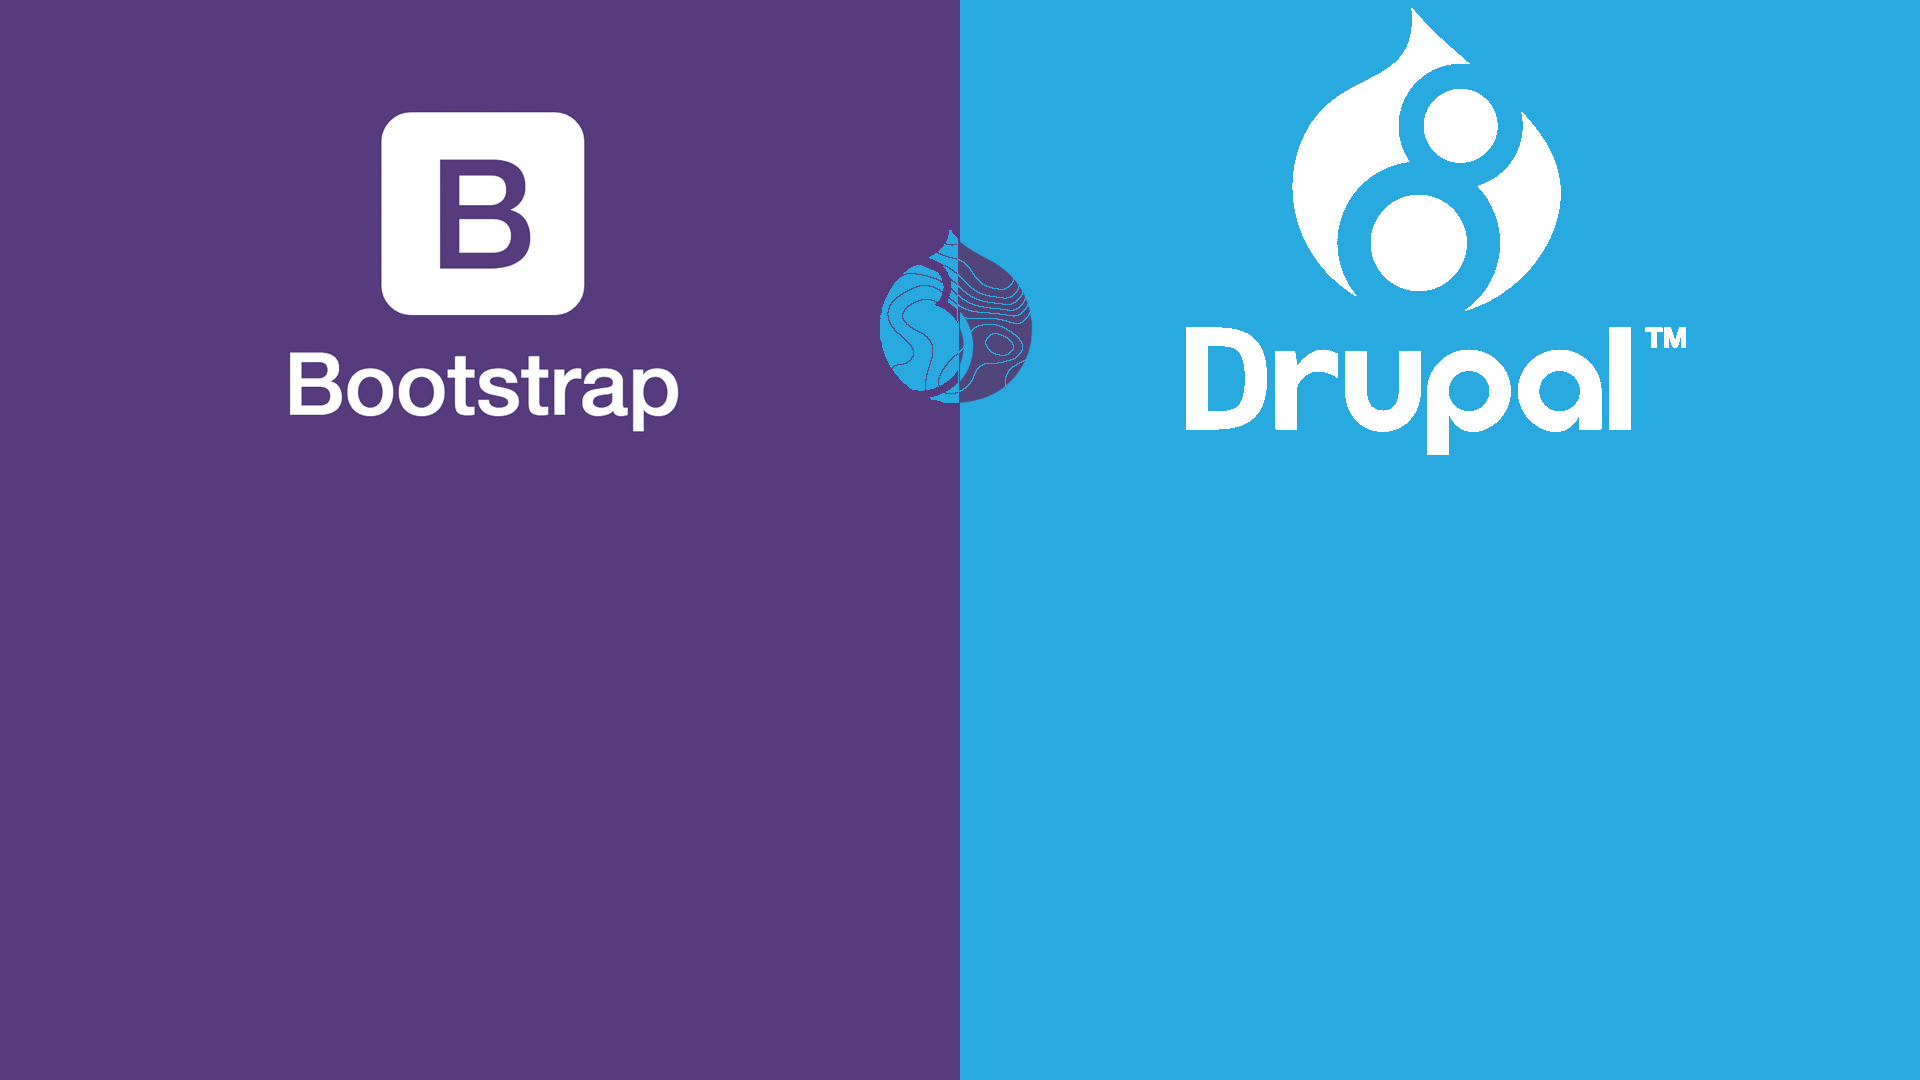 Convert your favorite HTML5 Bootstrap Template to Drupal 8